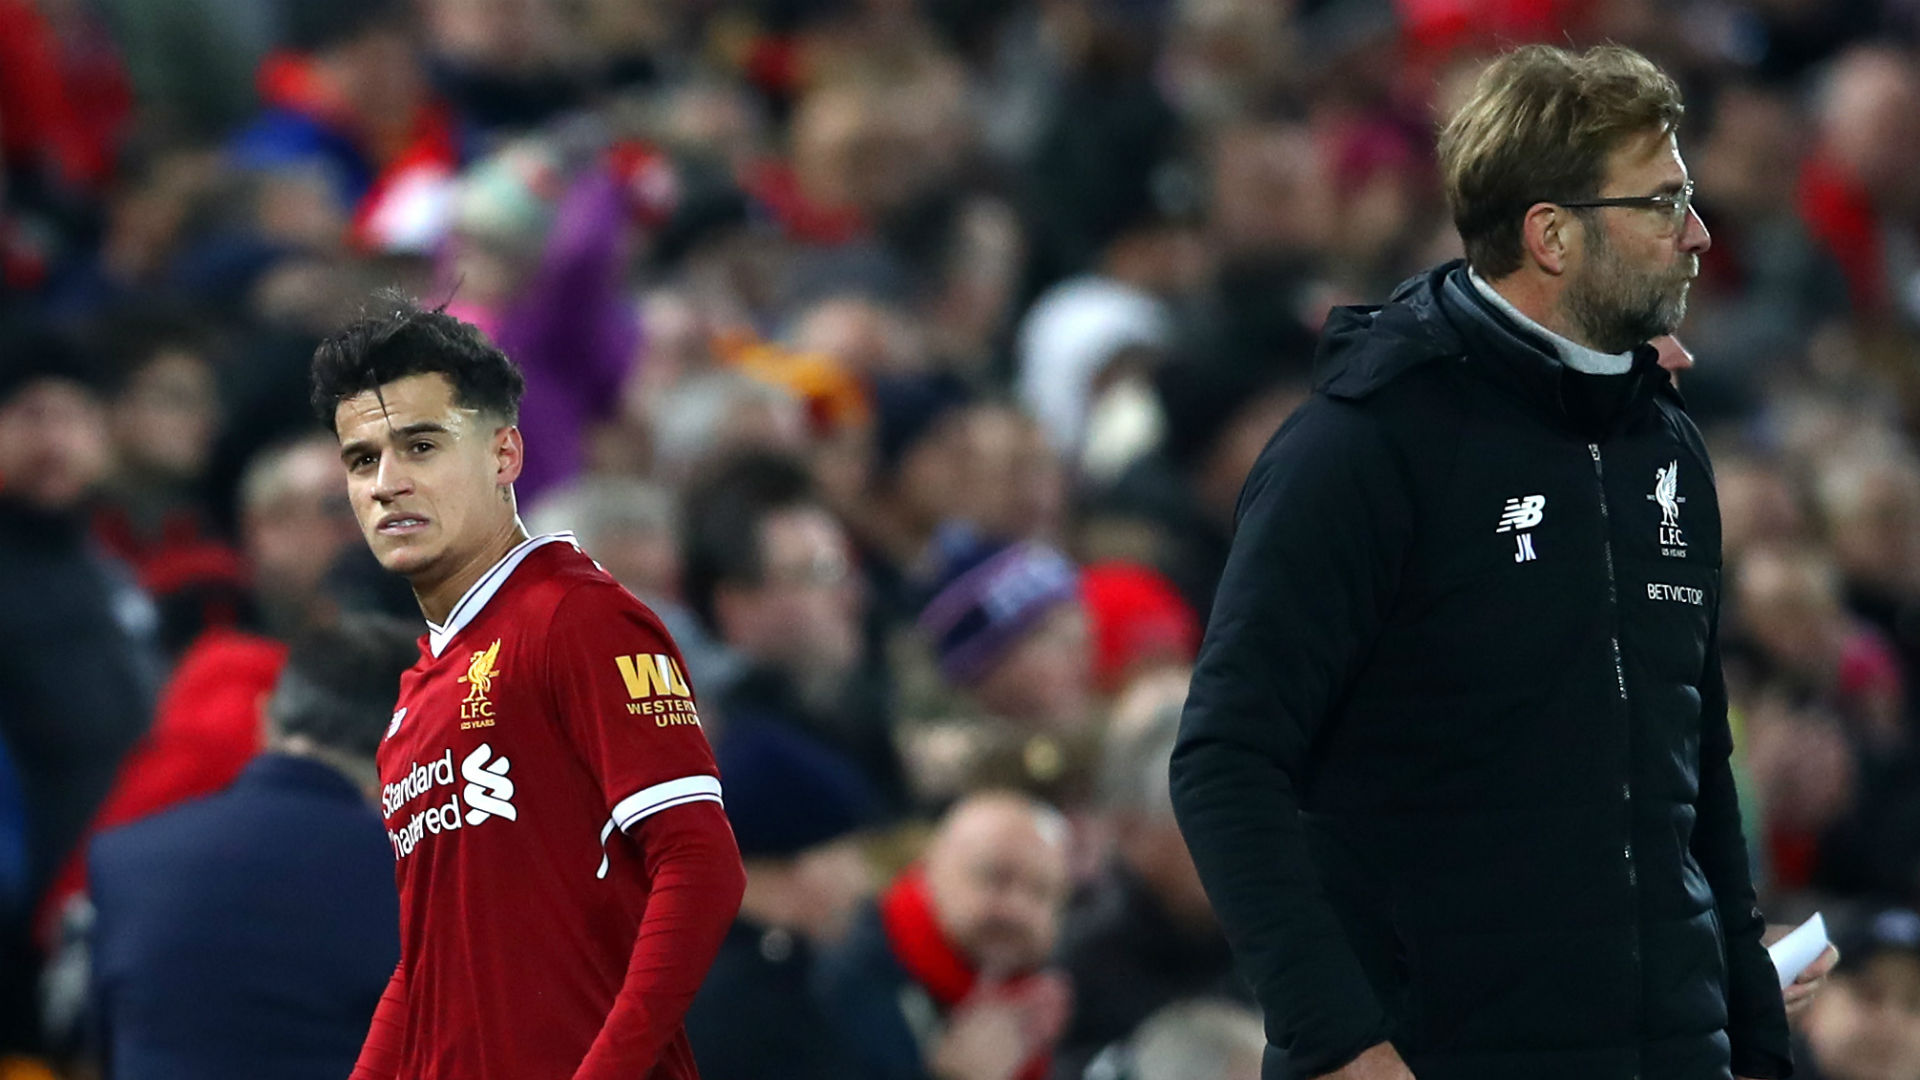 Jurgen Klopp: Liverpool players aren't distracted by Coutinho hype